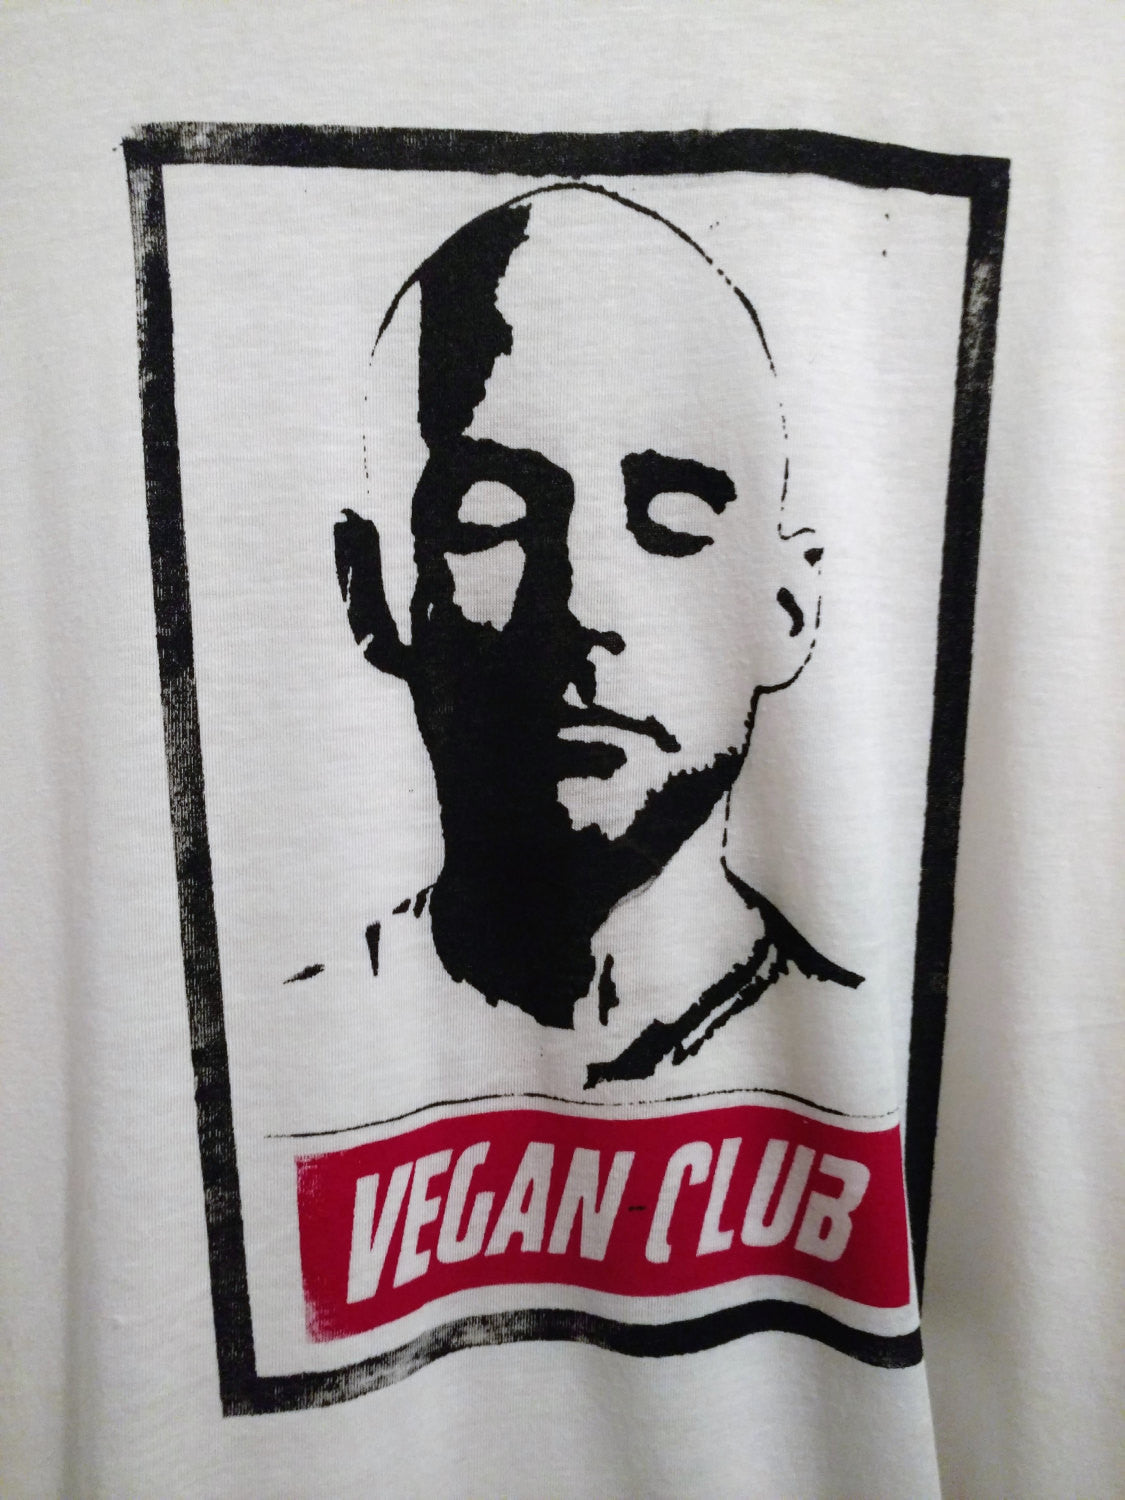 "Unisex T-shirt ""Vegan Club"" featuring Moby art by LeFou - @toshalobsinger"